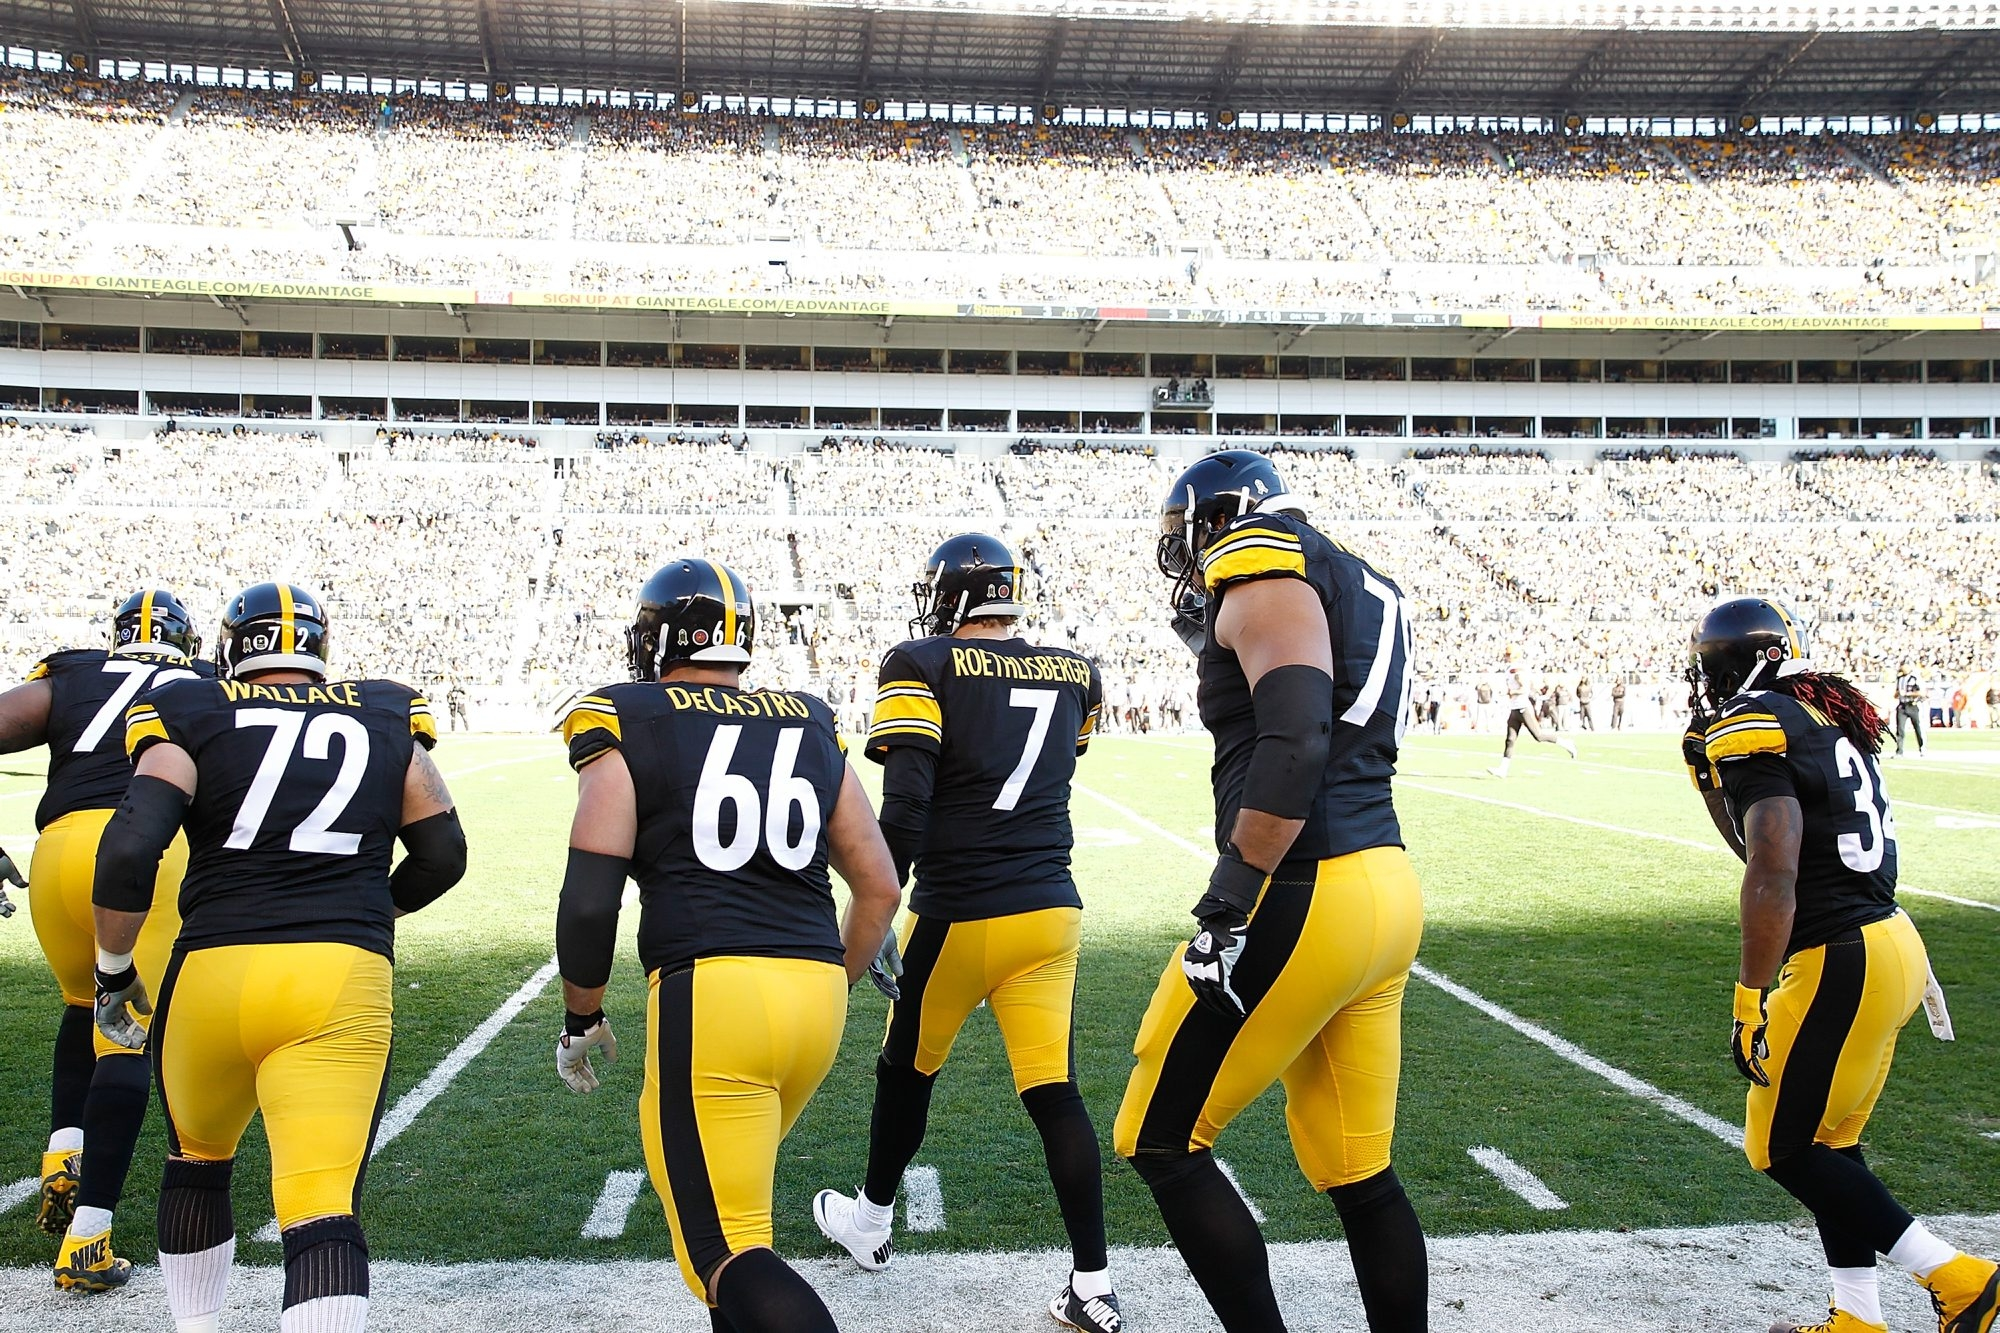 Ben Roethlisberger and the offensive line of the Pittsburgh Steelers take the field against the Cleveland Browns at Heinz Field in Pittsburgh last month. Bills fans should root for the Bengals to beat the Steelers this Sunday in Cincinnati.